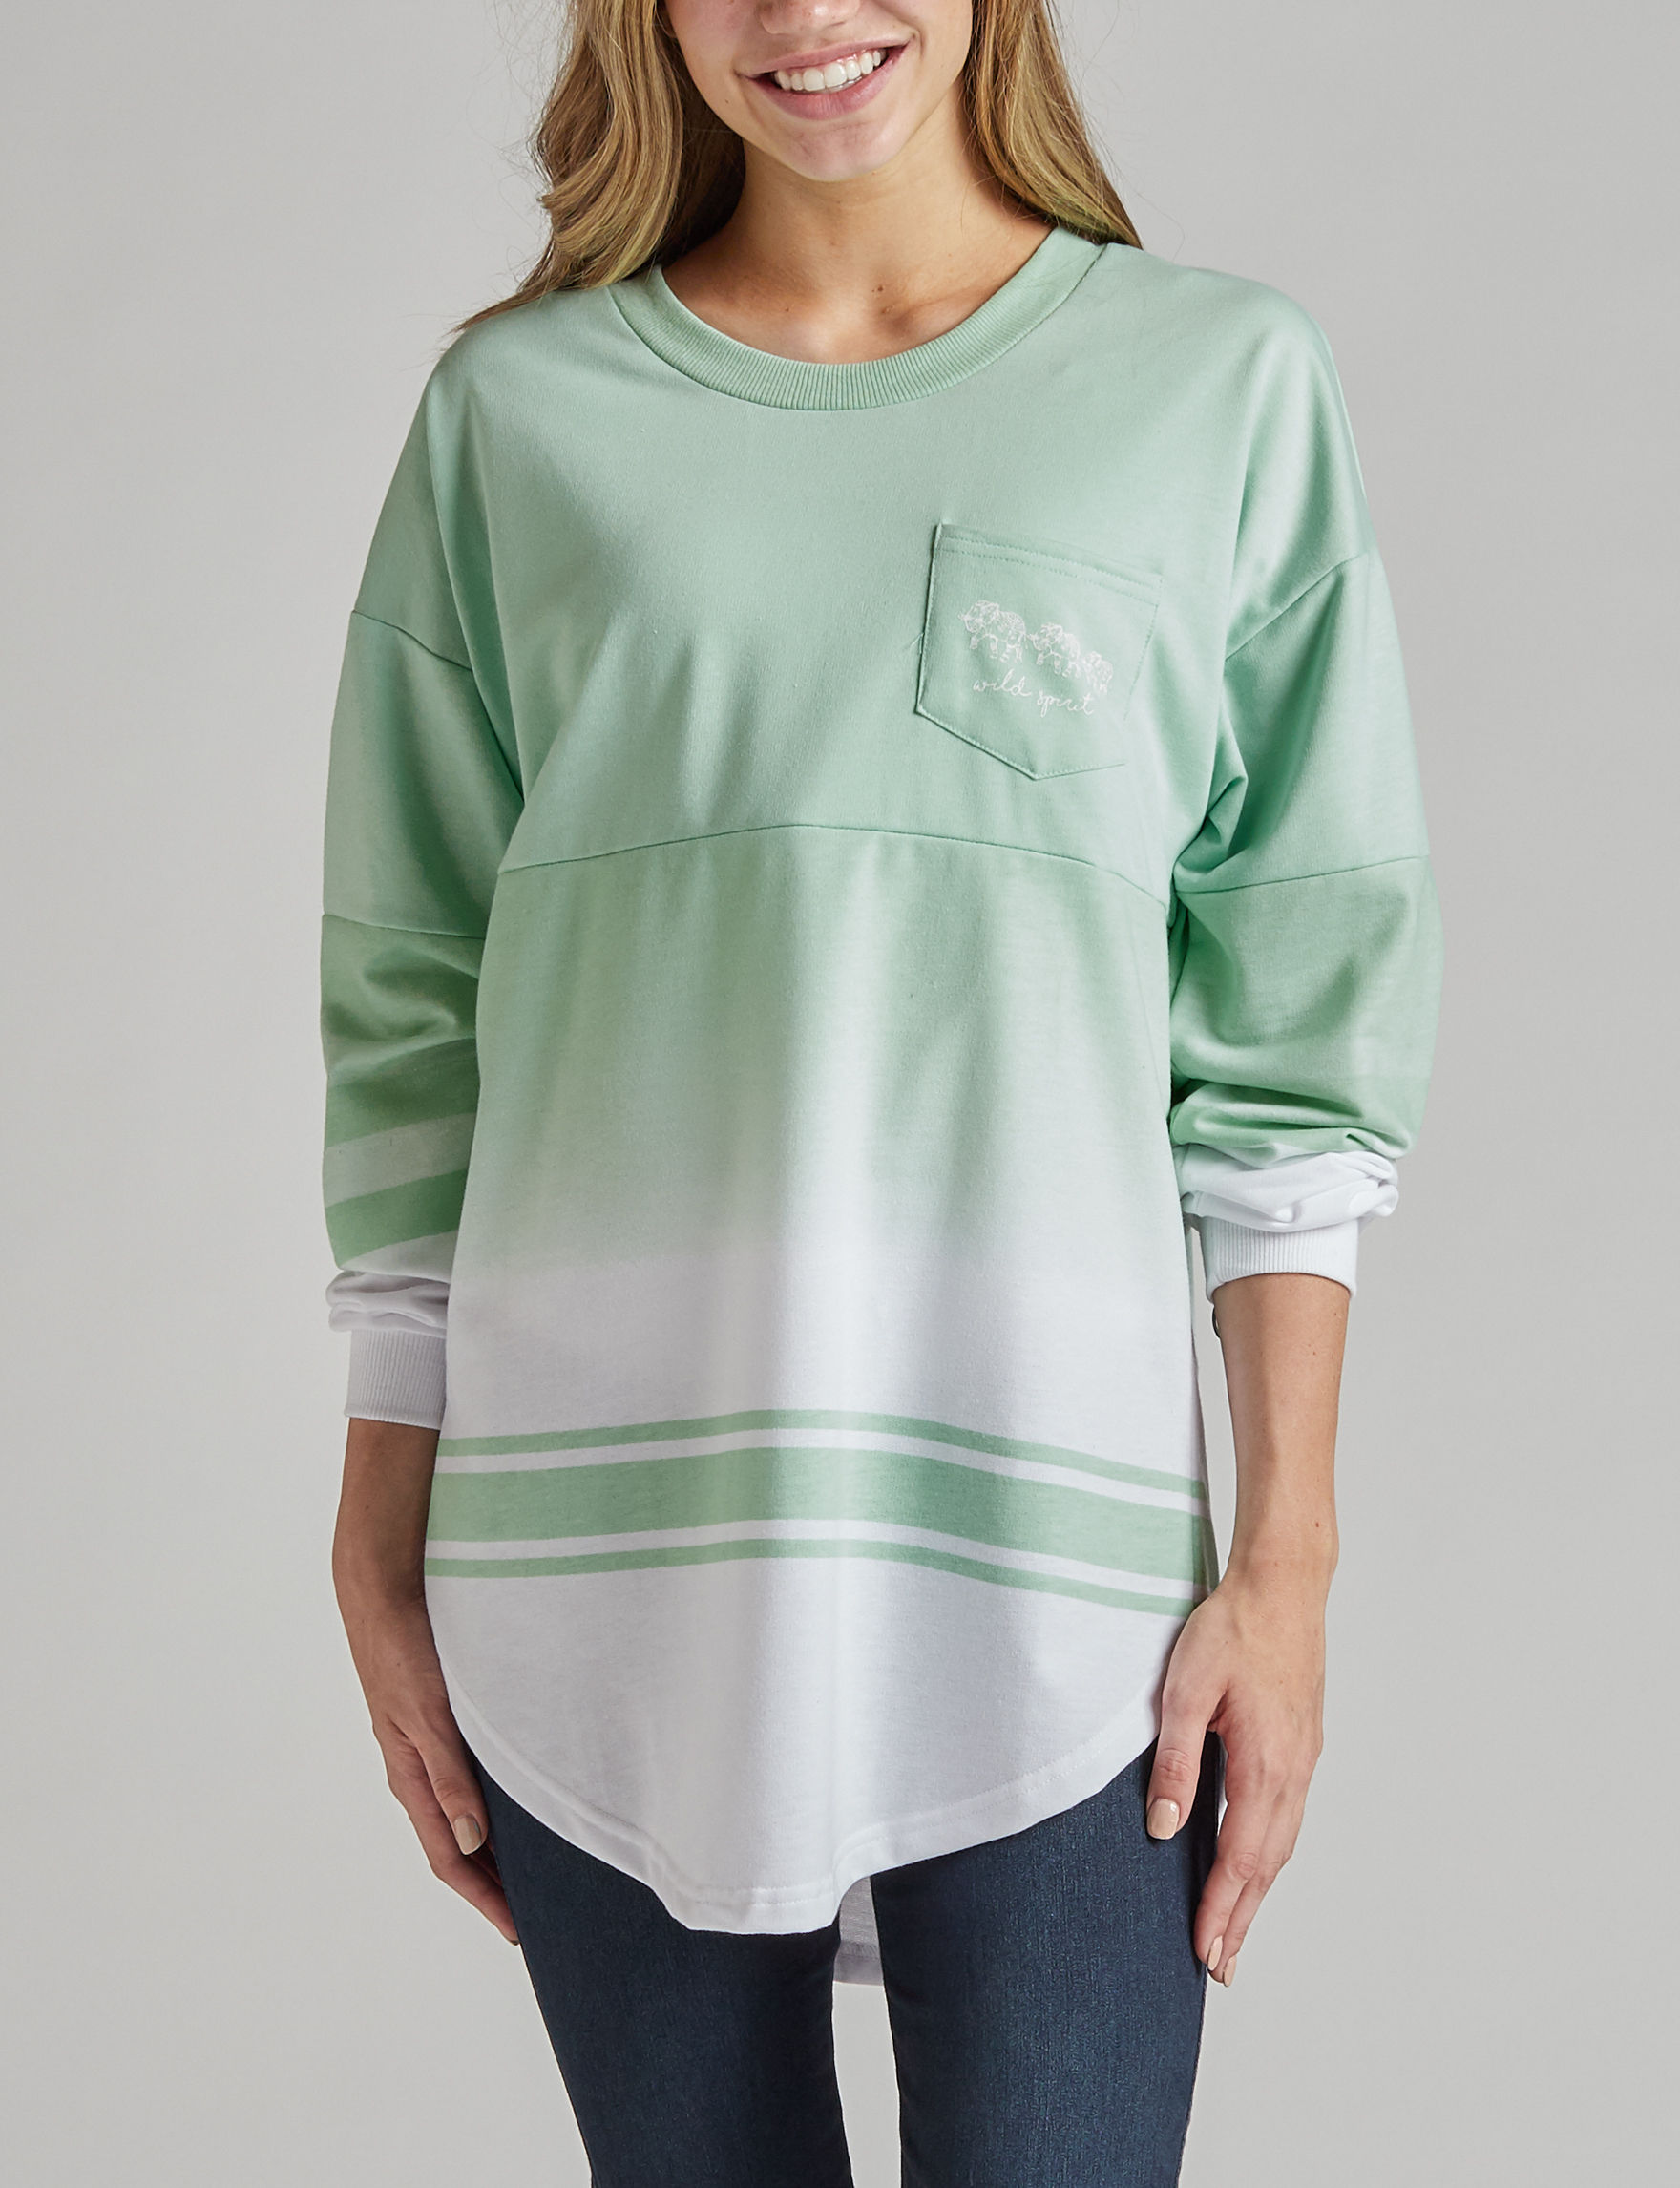 Justify Mint / White